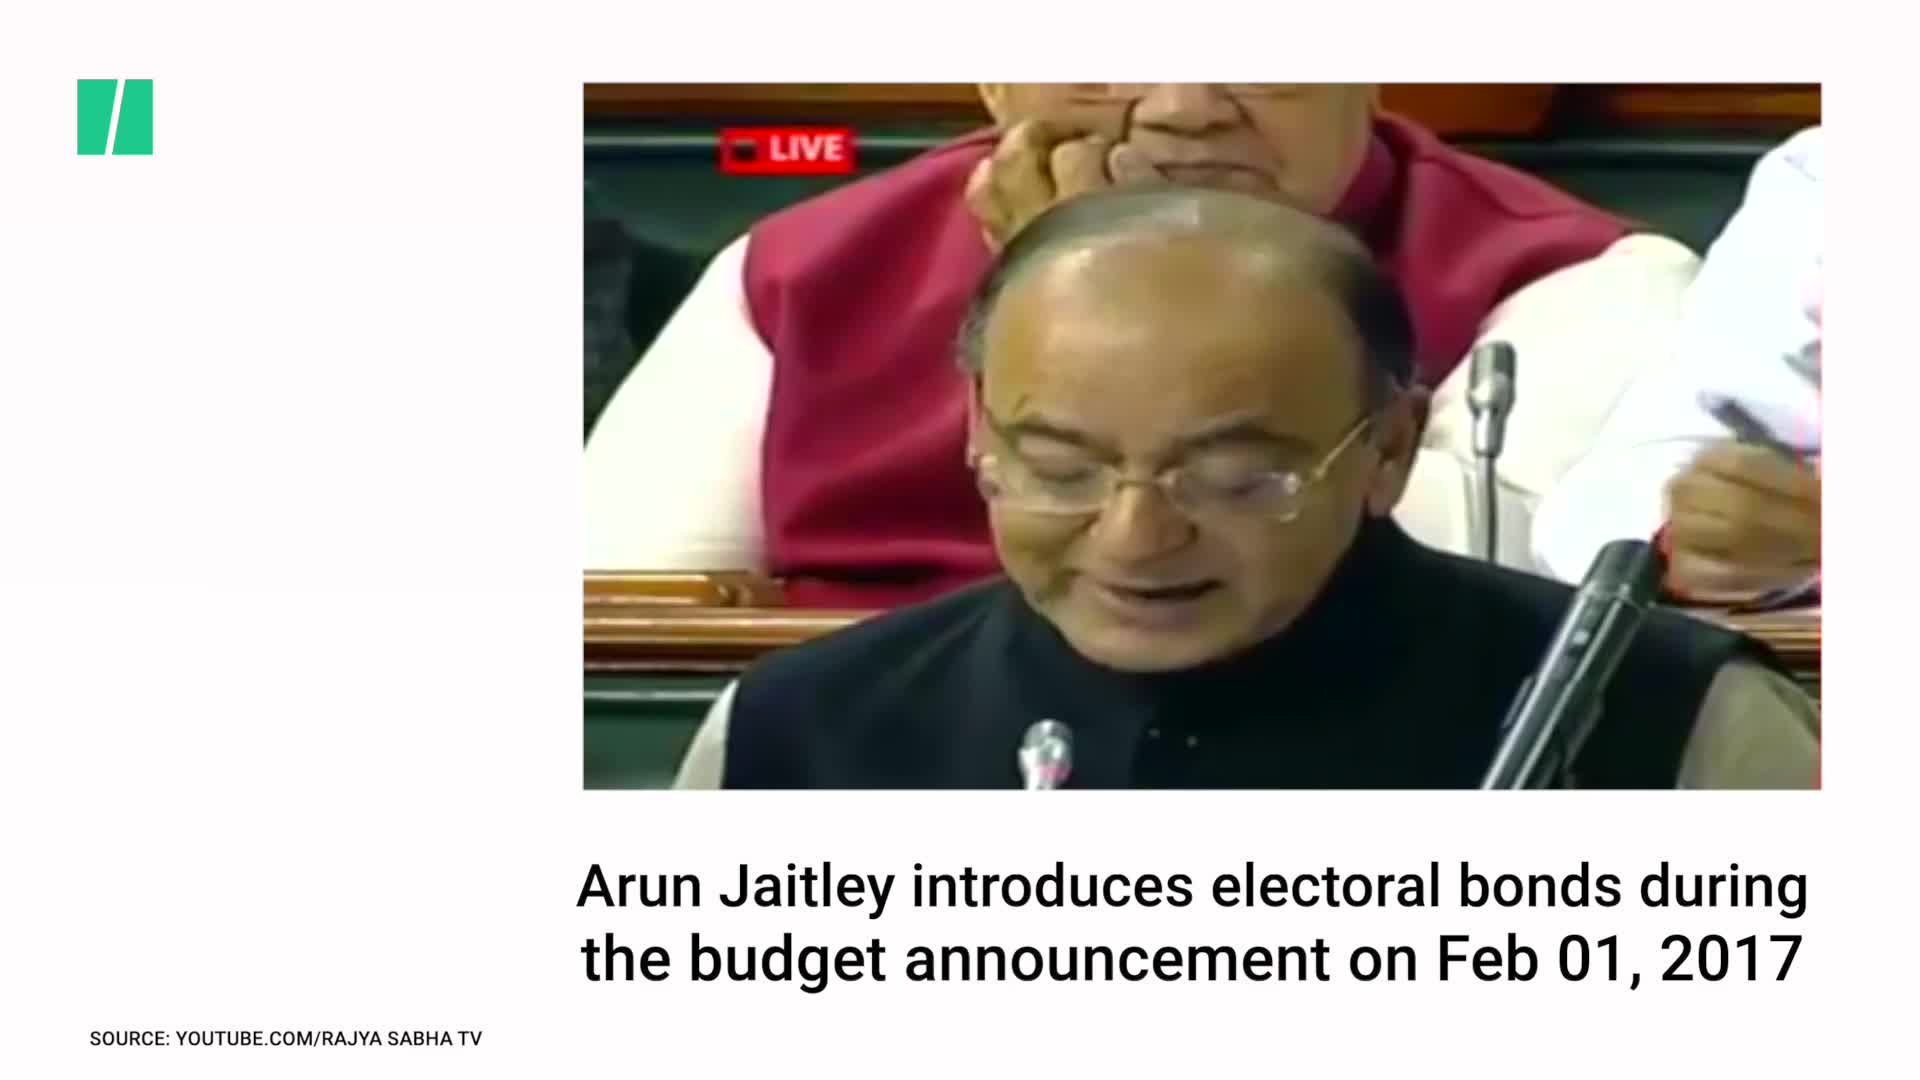 Govt Announces New Round Of Electoral Bonds Just In Time For Delhi Elections